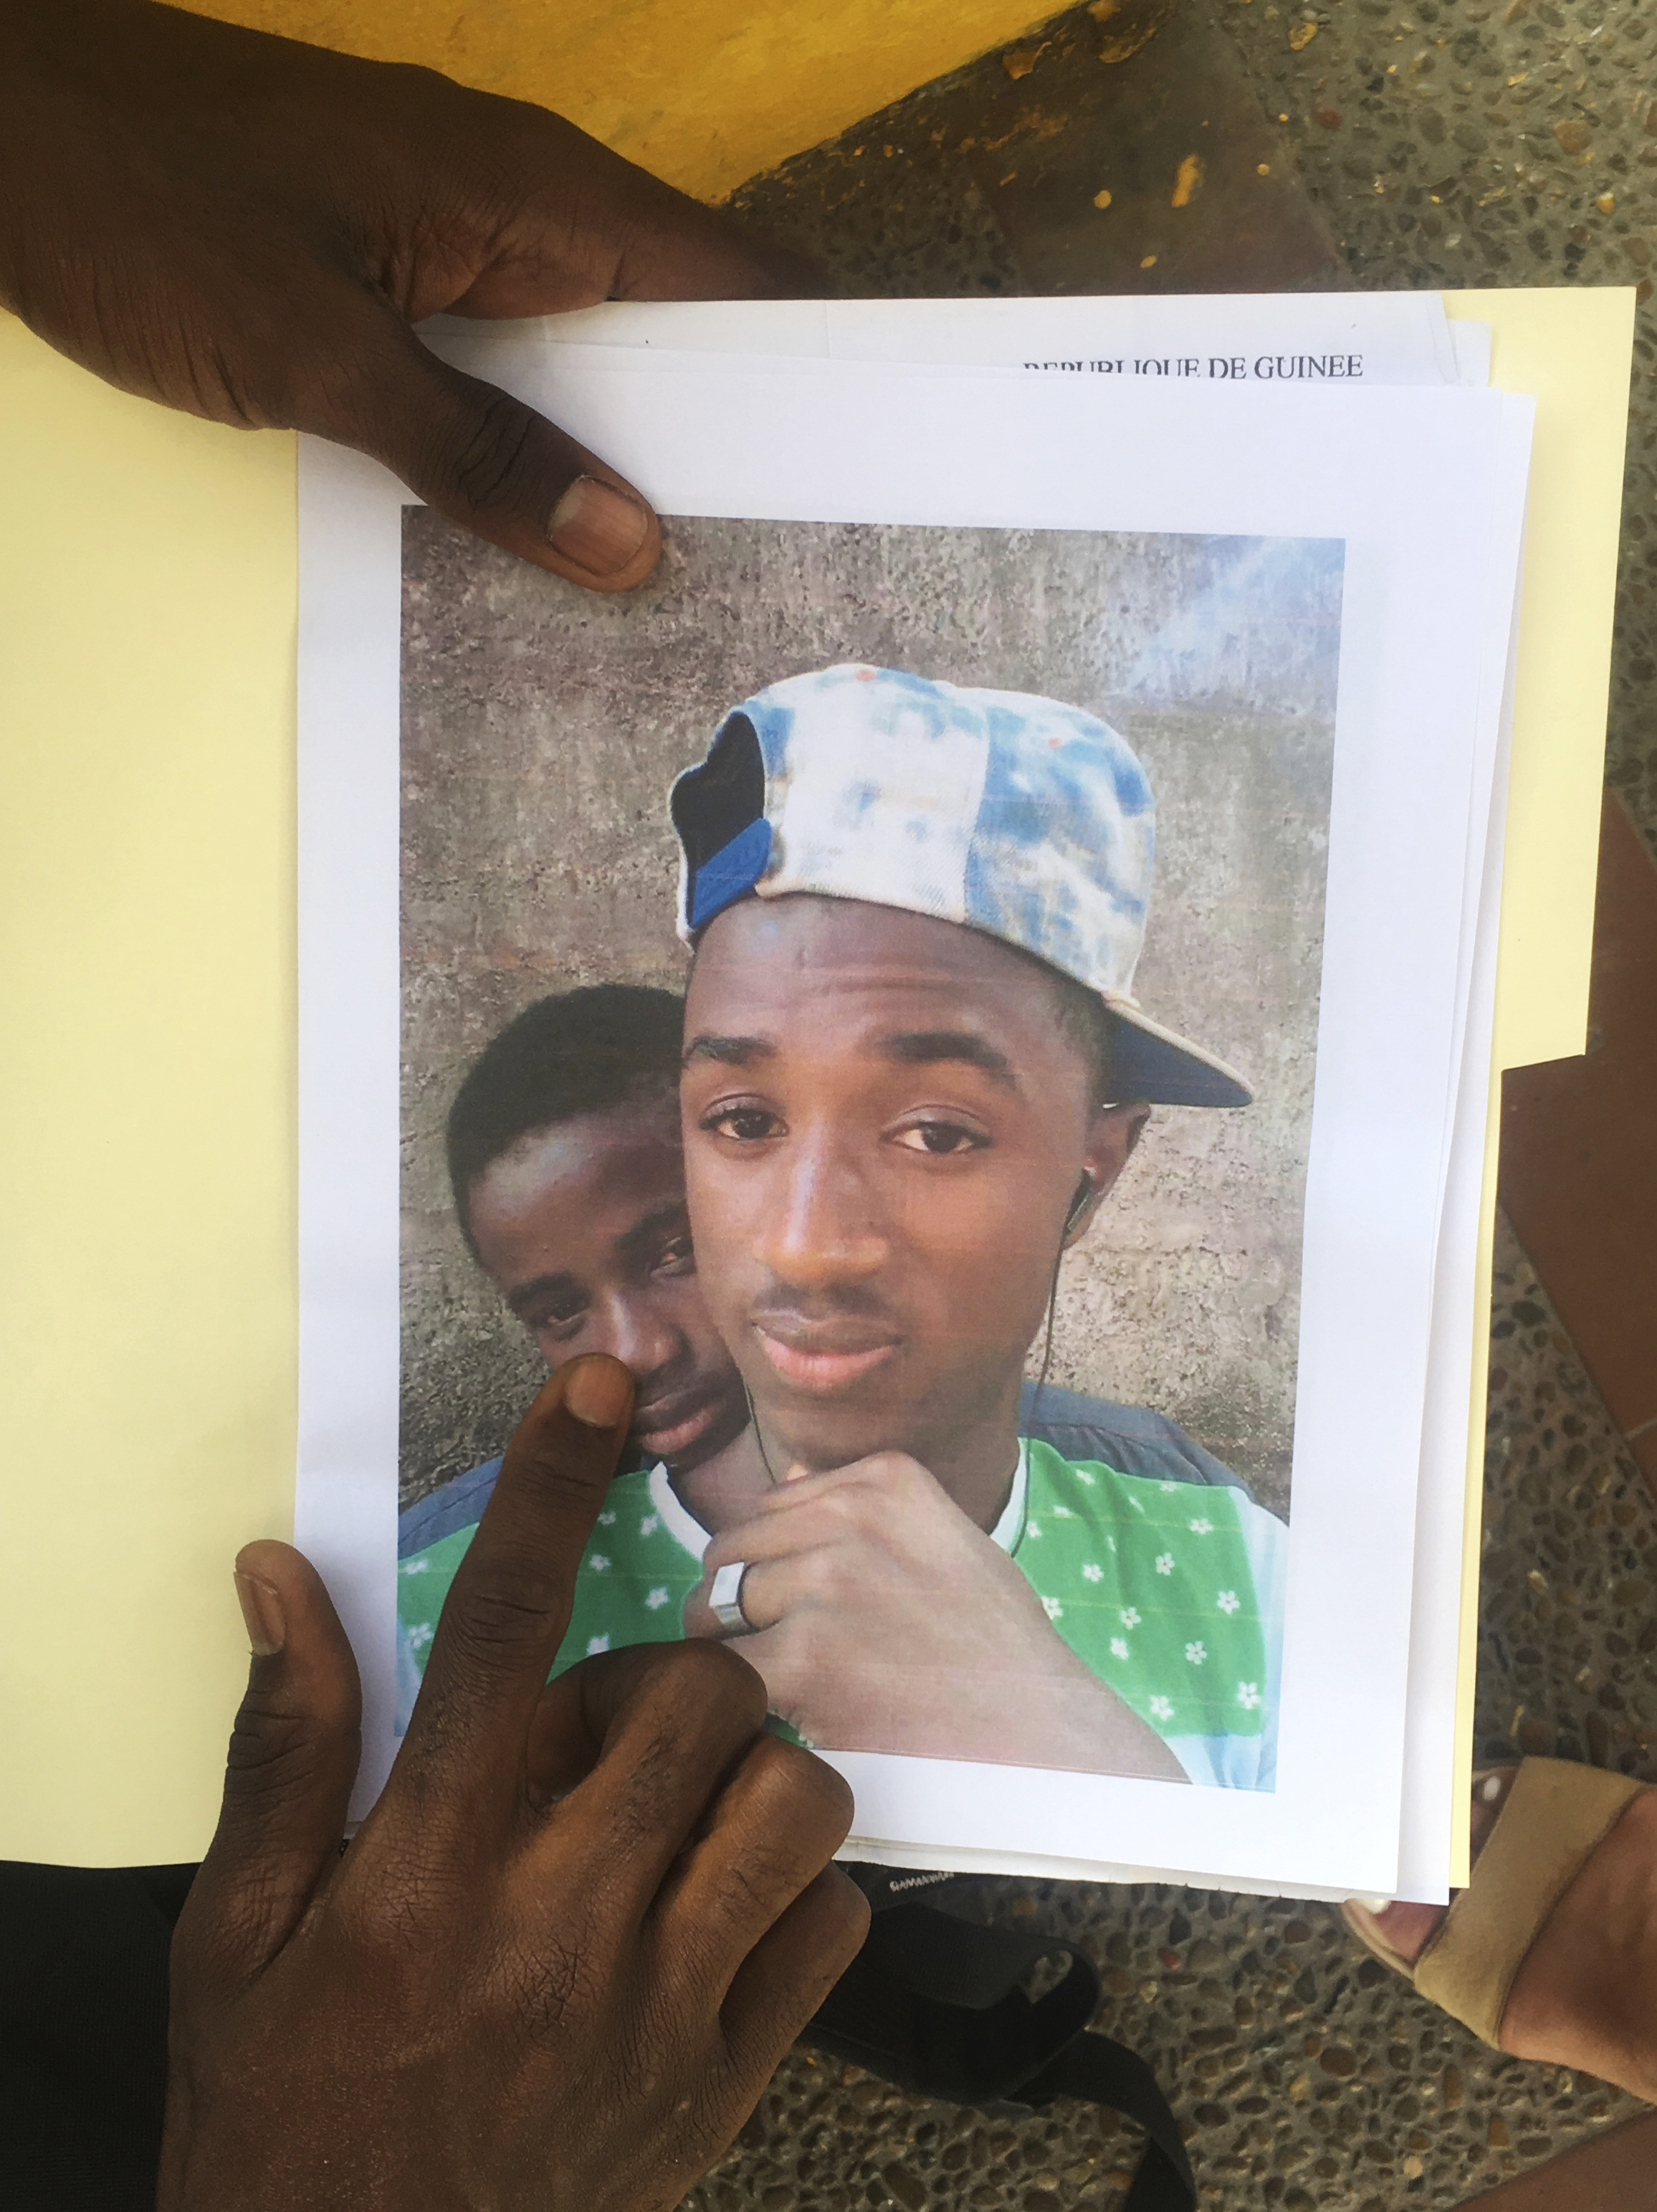 Mamadou Aliou Barry, who departed from his native Guinea in West Africa when he was 14, a few years ago, shows a print of a selfie with his friend while waiting for entry to the U.S. on the Gateway Bridge in Matamoros, Mexico, which connects to Brown...